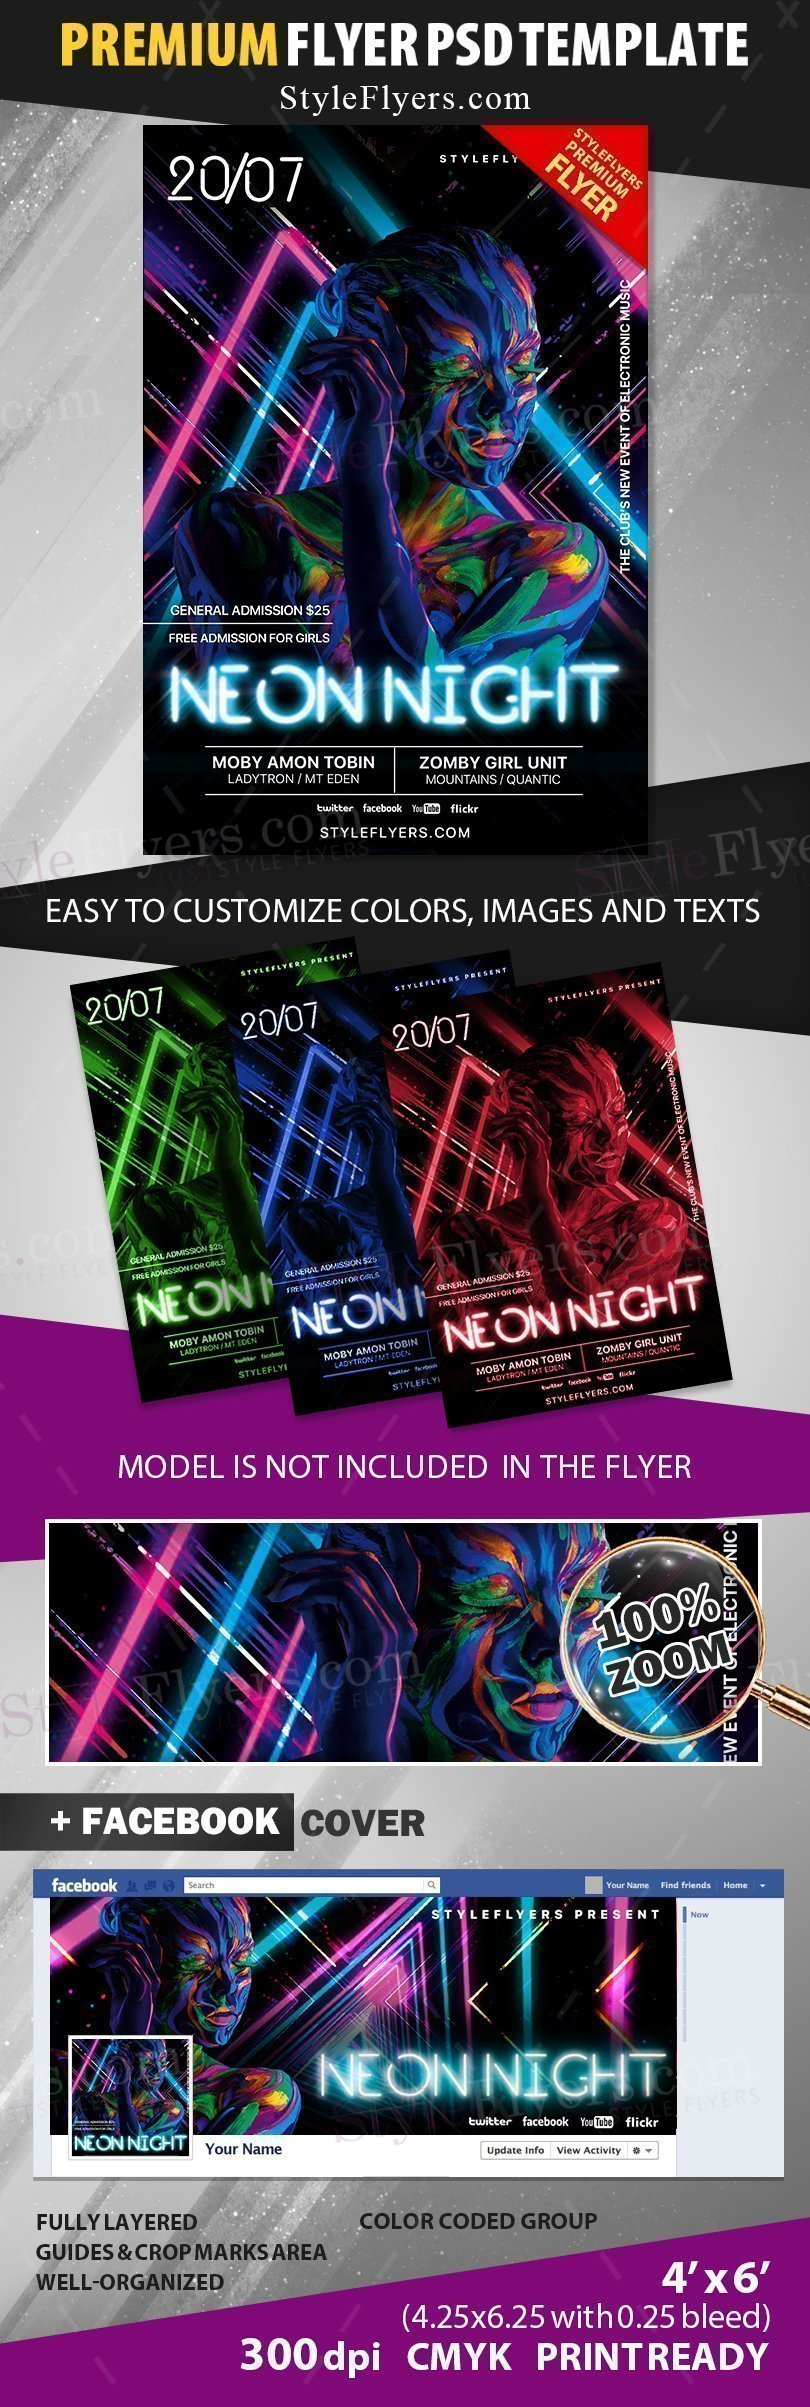 preview_neon night_psd_flyer